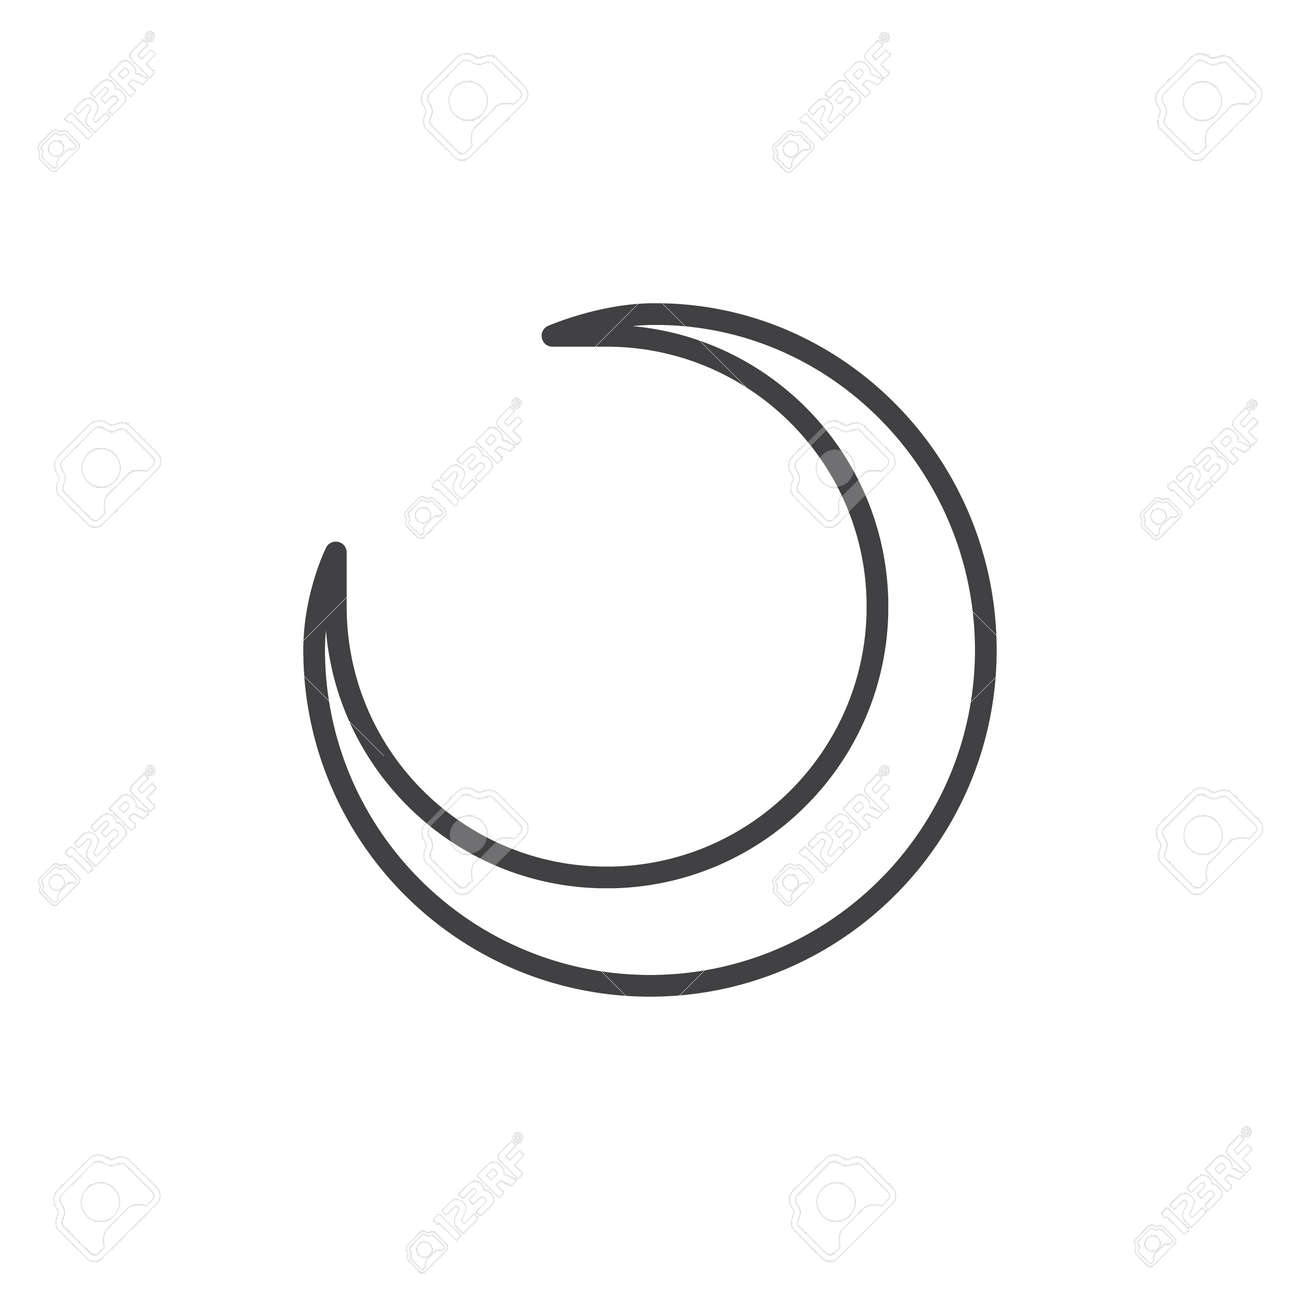 crescent moon line icon linear style pictogram isolated on white royalty free cliparts vectors and stock illustration image 85981807 crescent moon line icon linear style pictogram isolated on white